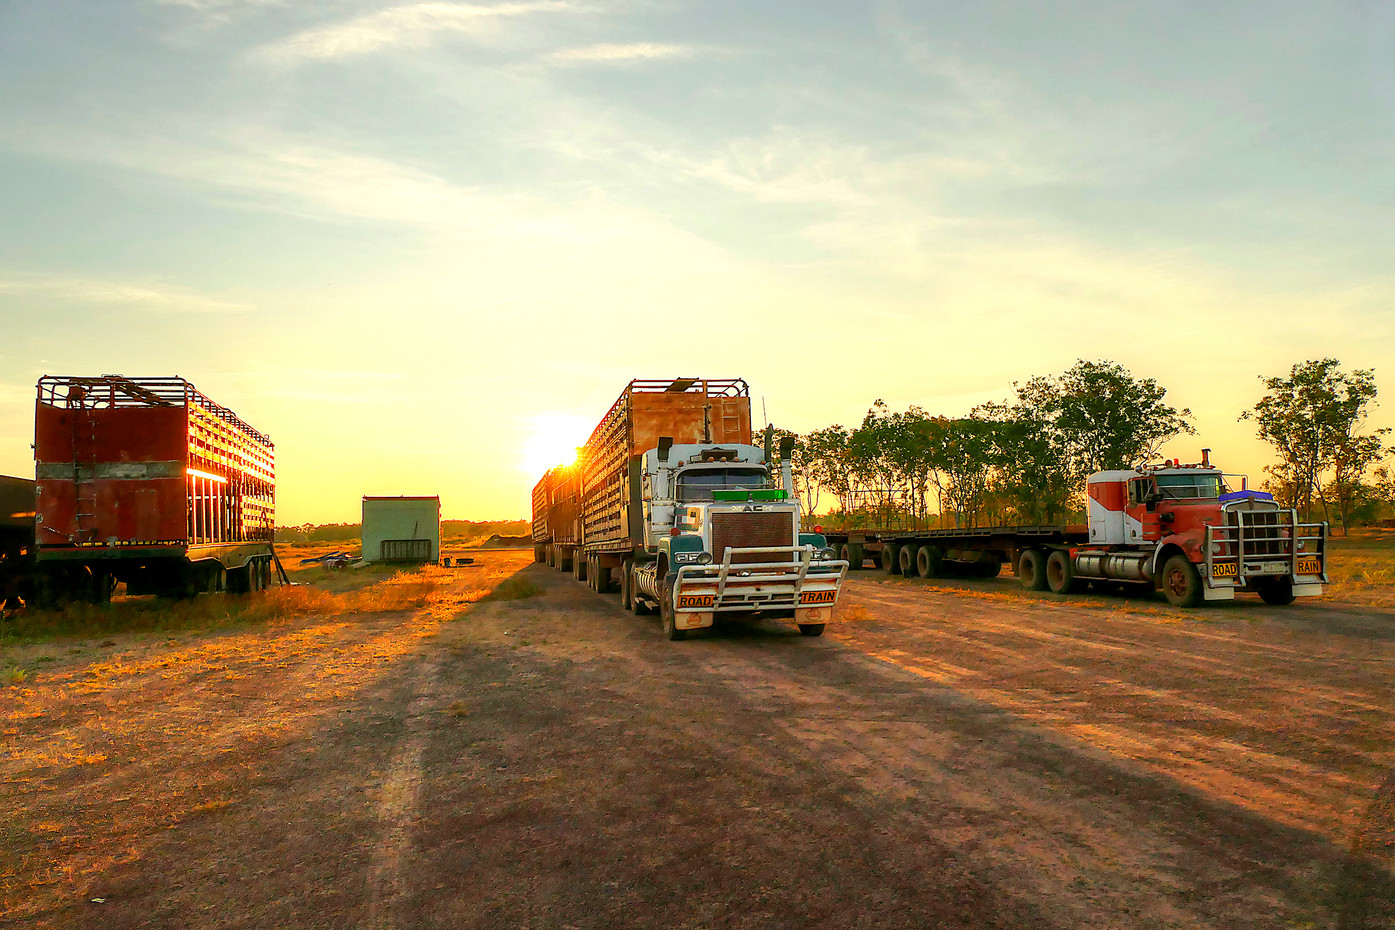 Road Trains at sunset in the Northern Territory, Australia